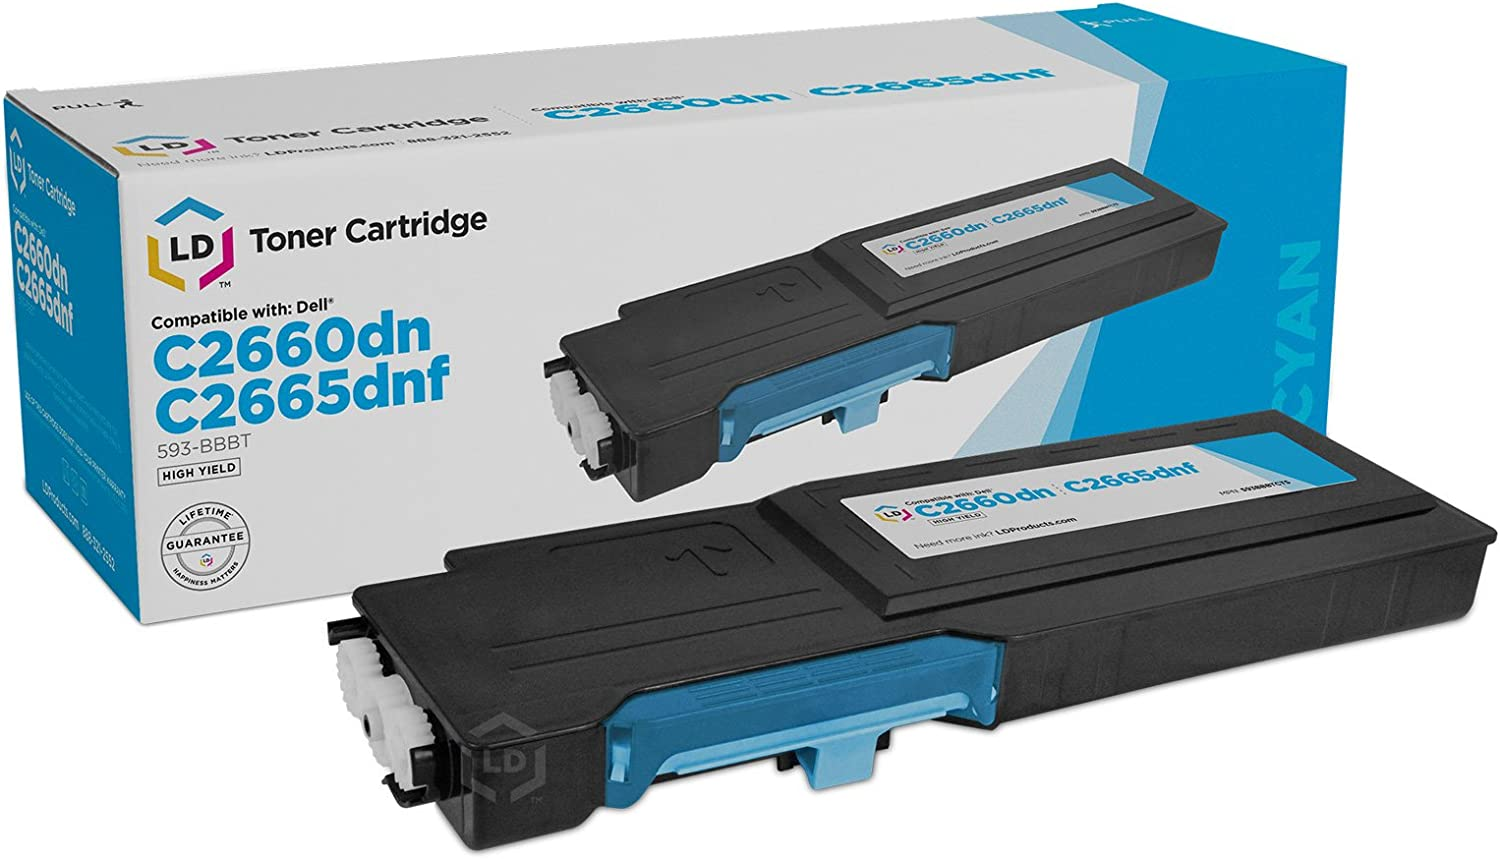 LD © Dell Compatible 488NH (TW3NN) Cyan High Yield Toner Cartridge Includes: 1 593-BBBT Cyan for use in Dell Color Laser C2660dn, and C2665dnf Printers